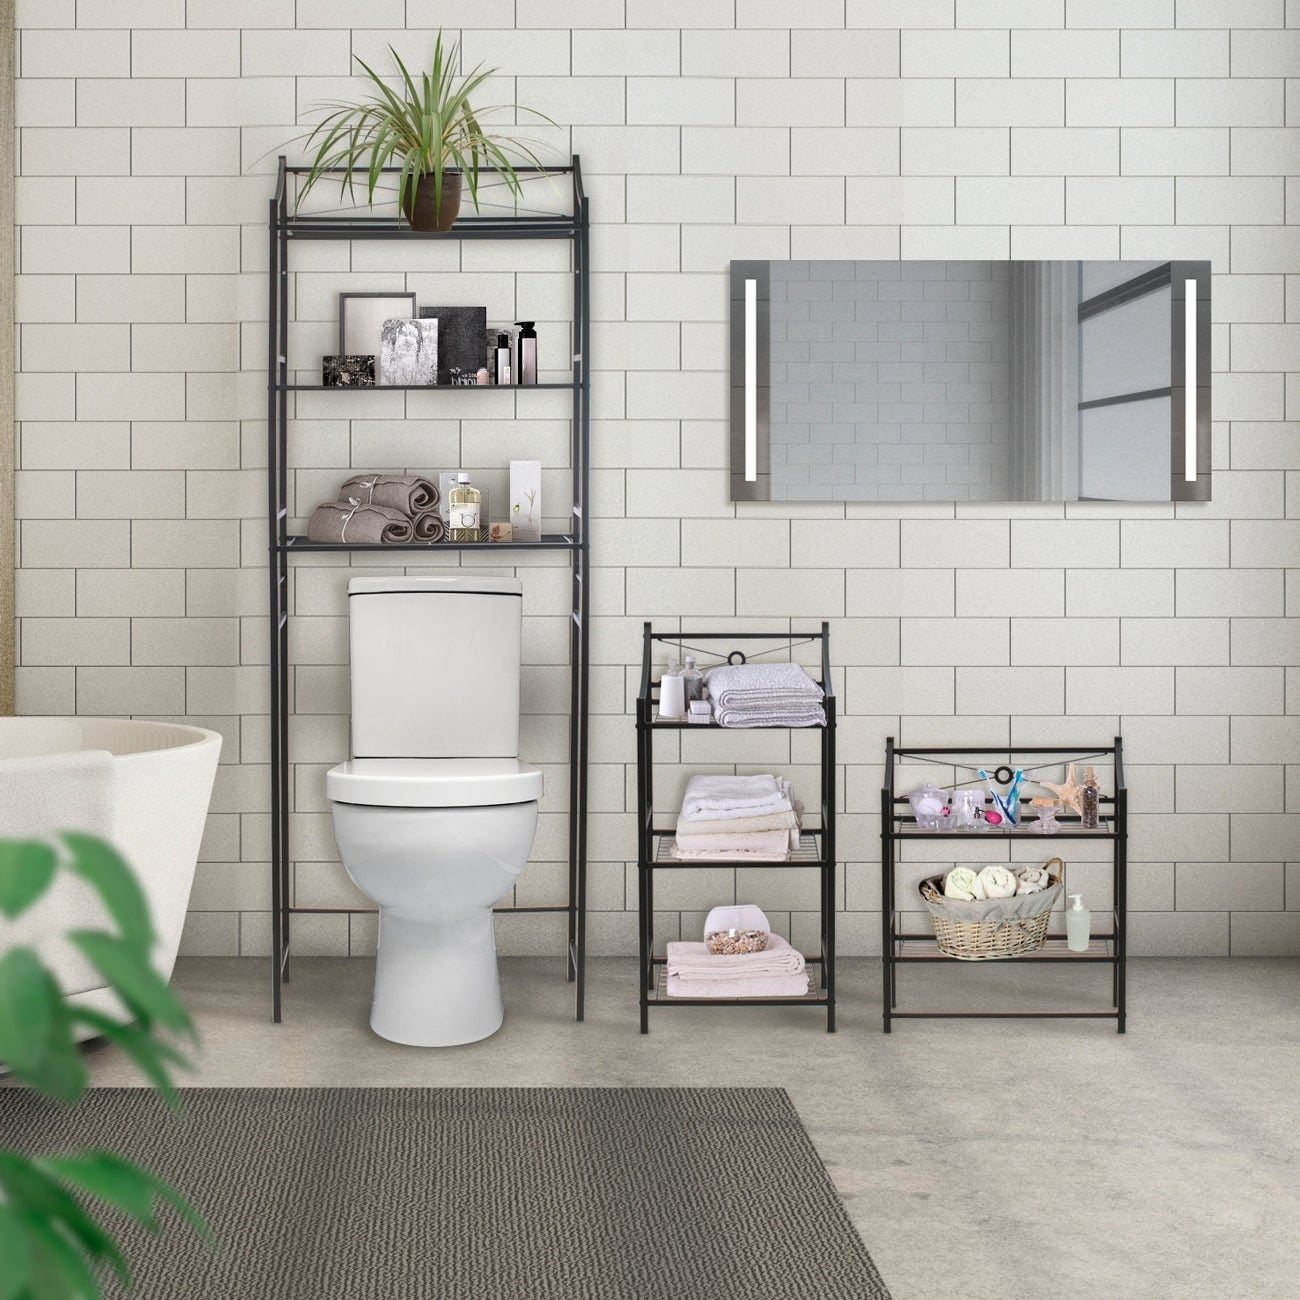 Sorbus Bathroom Storage Shelf Freestanding Shelves For Bath Essentials Planters Books And Much More regarding sizing 1300 X 1300